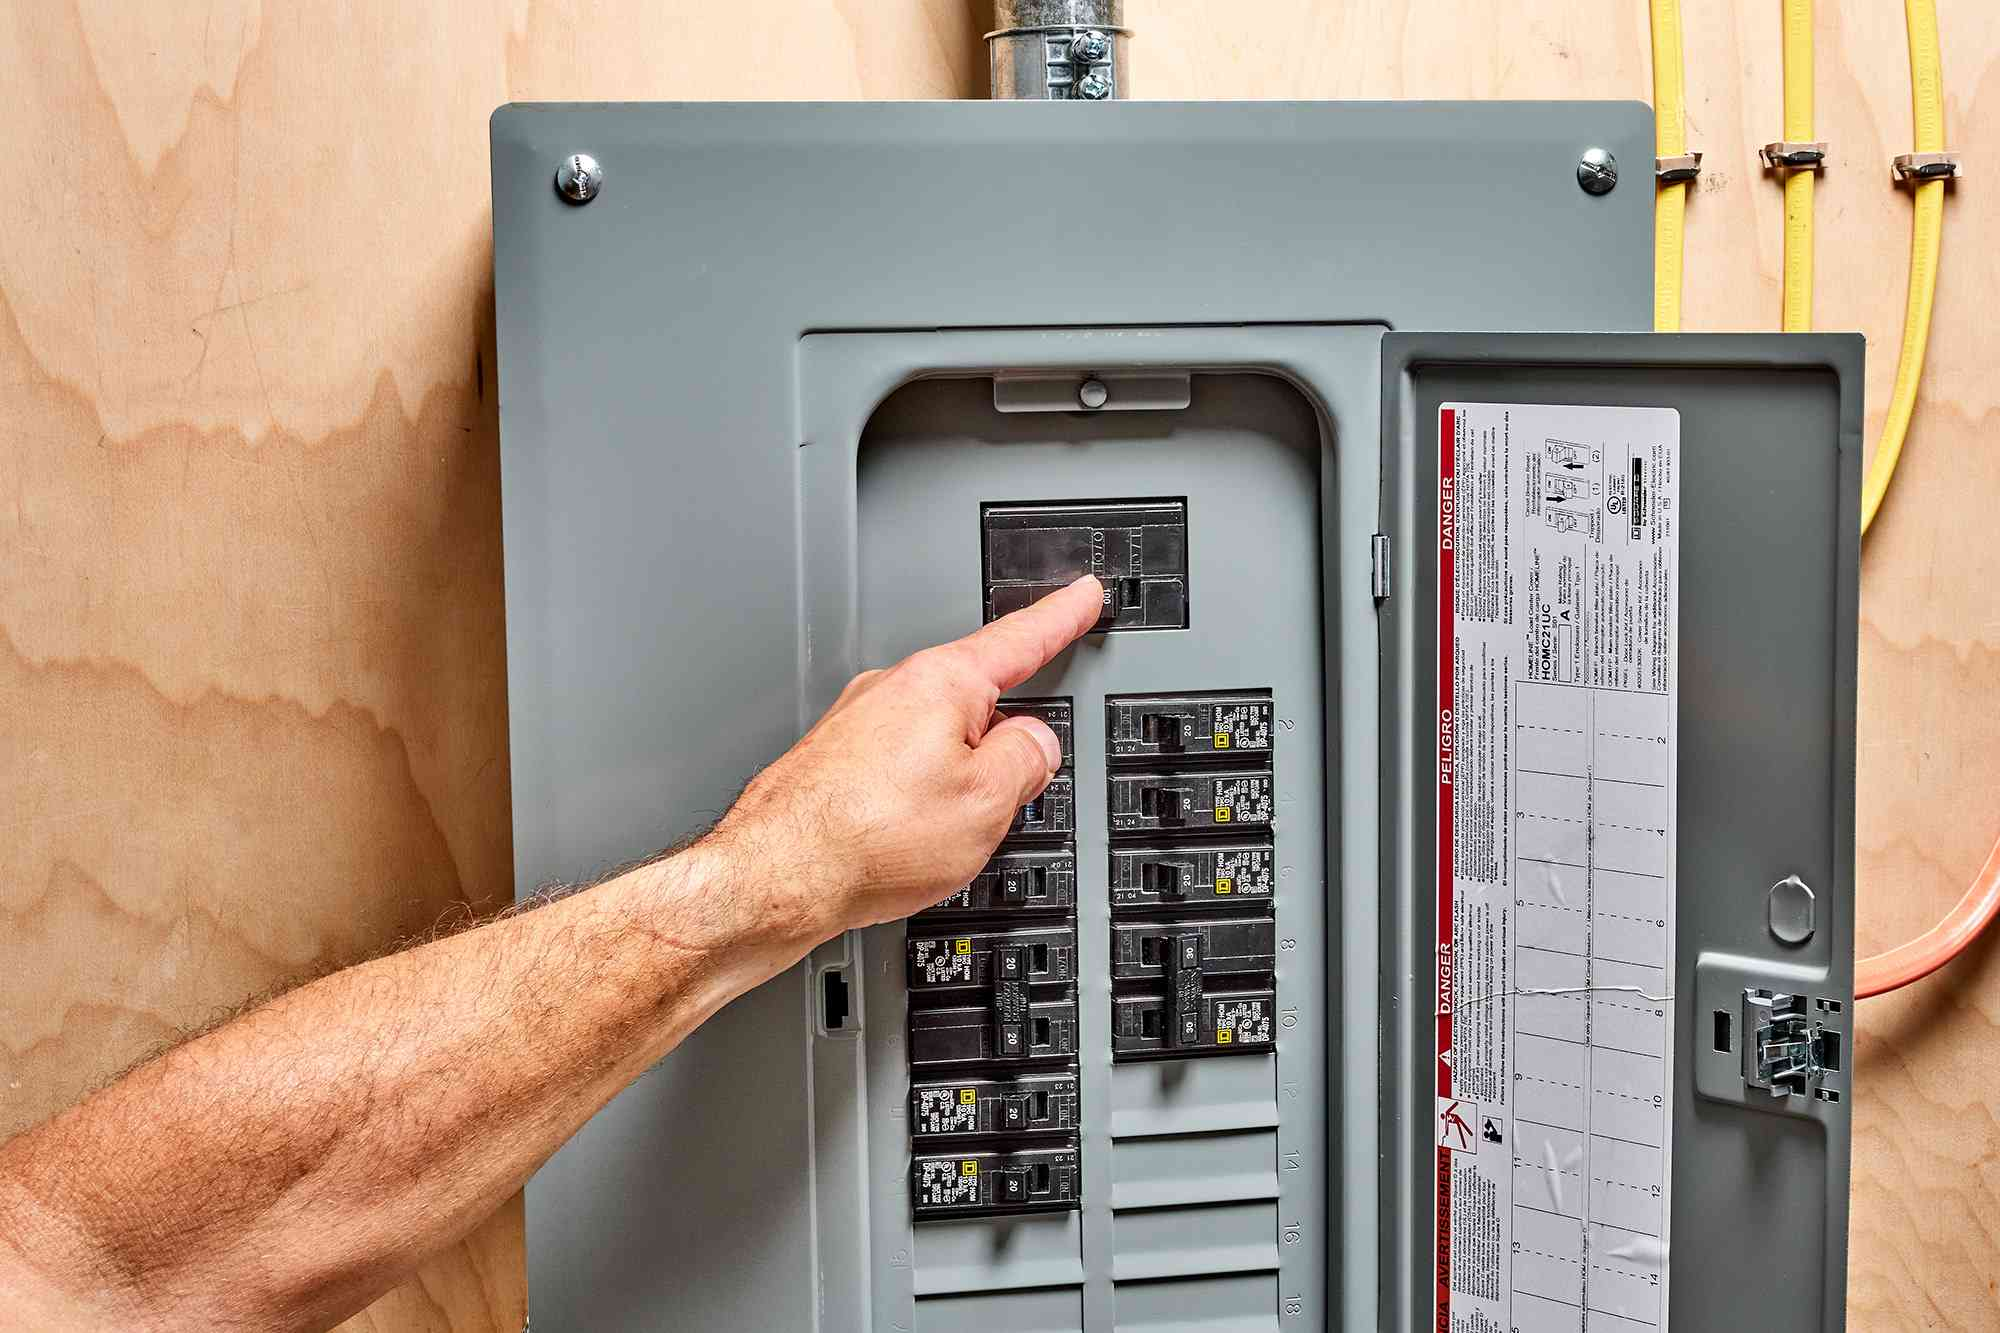 Circuit breaker switch turned on in electric panel after completed installation